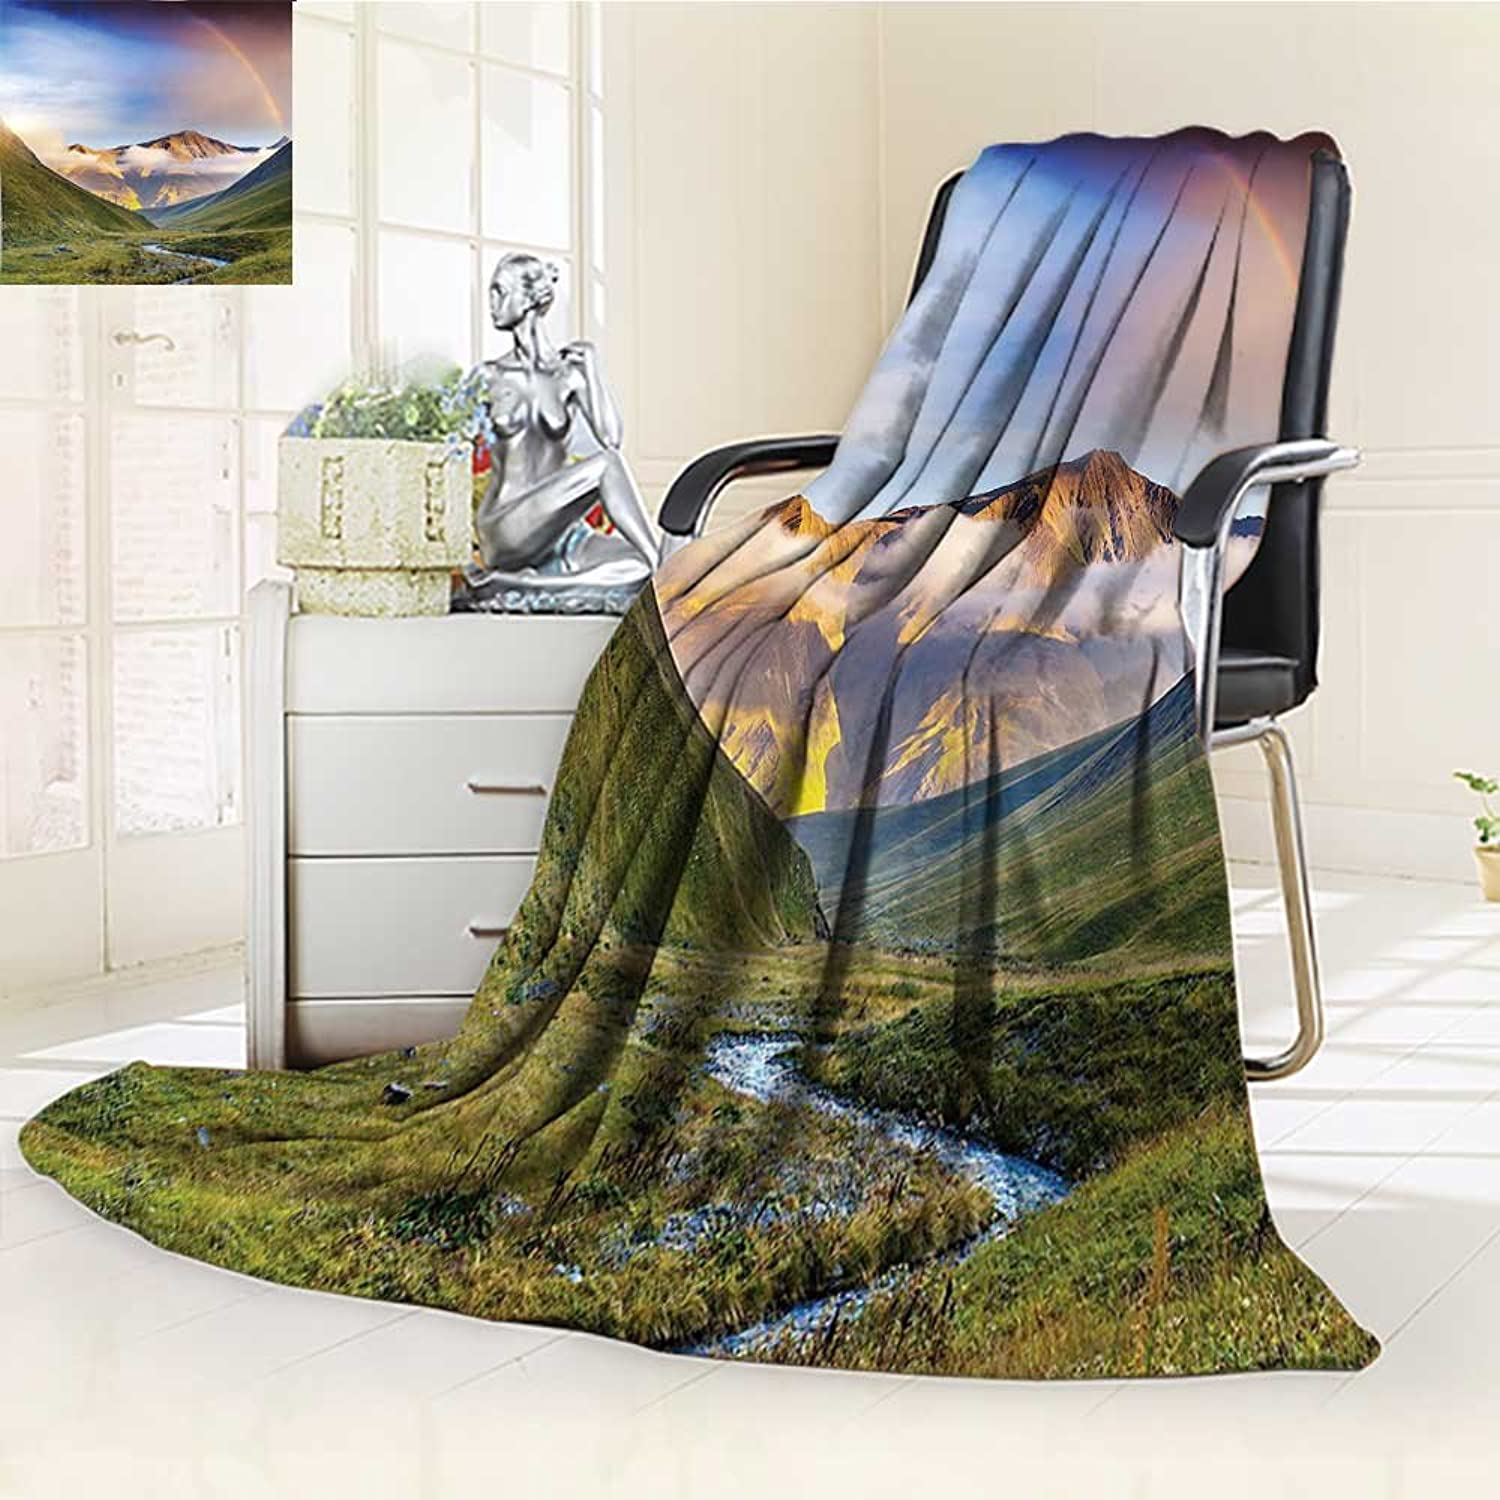 YOYIHOME Duplex Printed Blanket Warm Microfiber Meadow with Narrow Riverbed Mountains Rainbow Grass Clouds and Mist at Daytime Multi for Bed or Couch W47 x H59